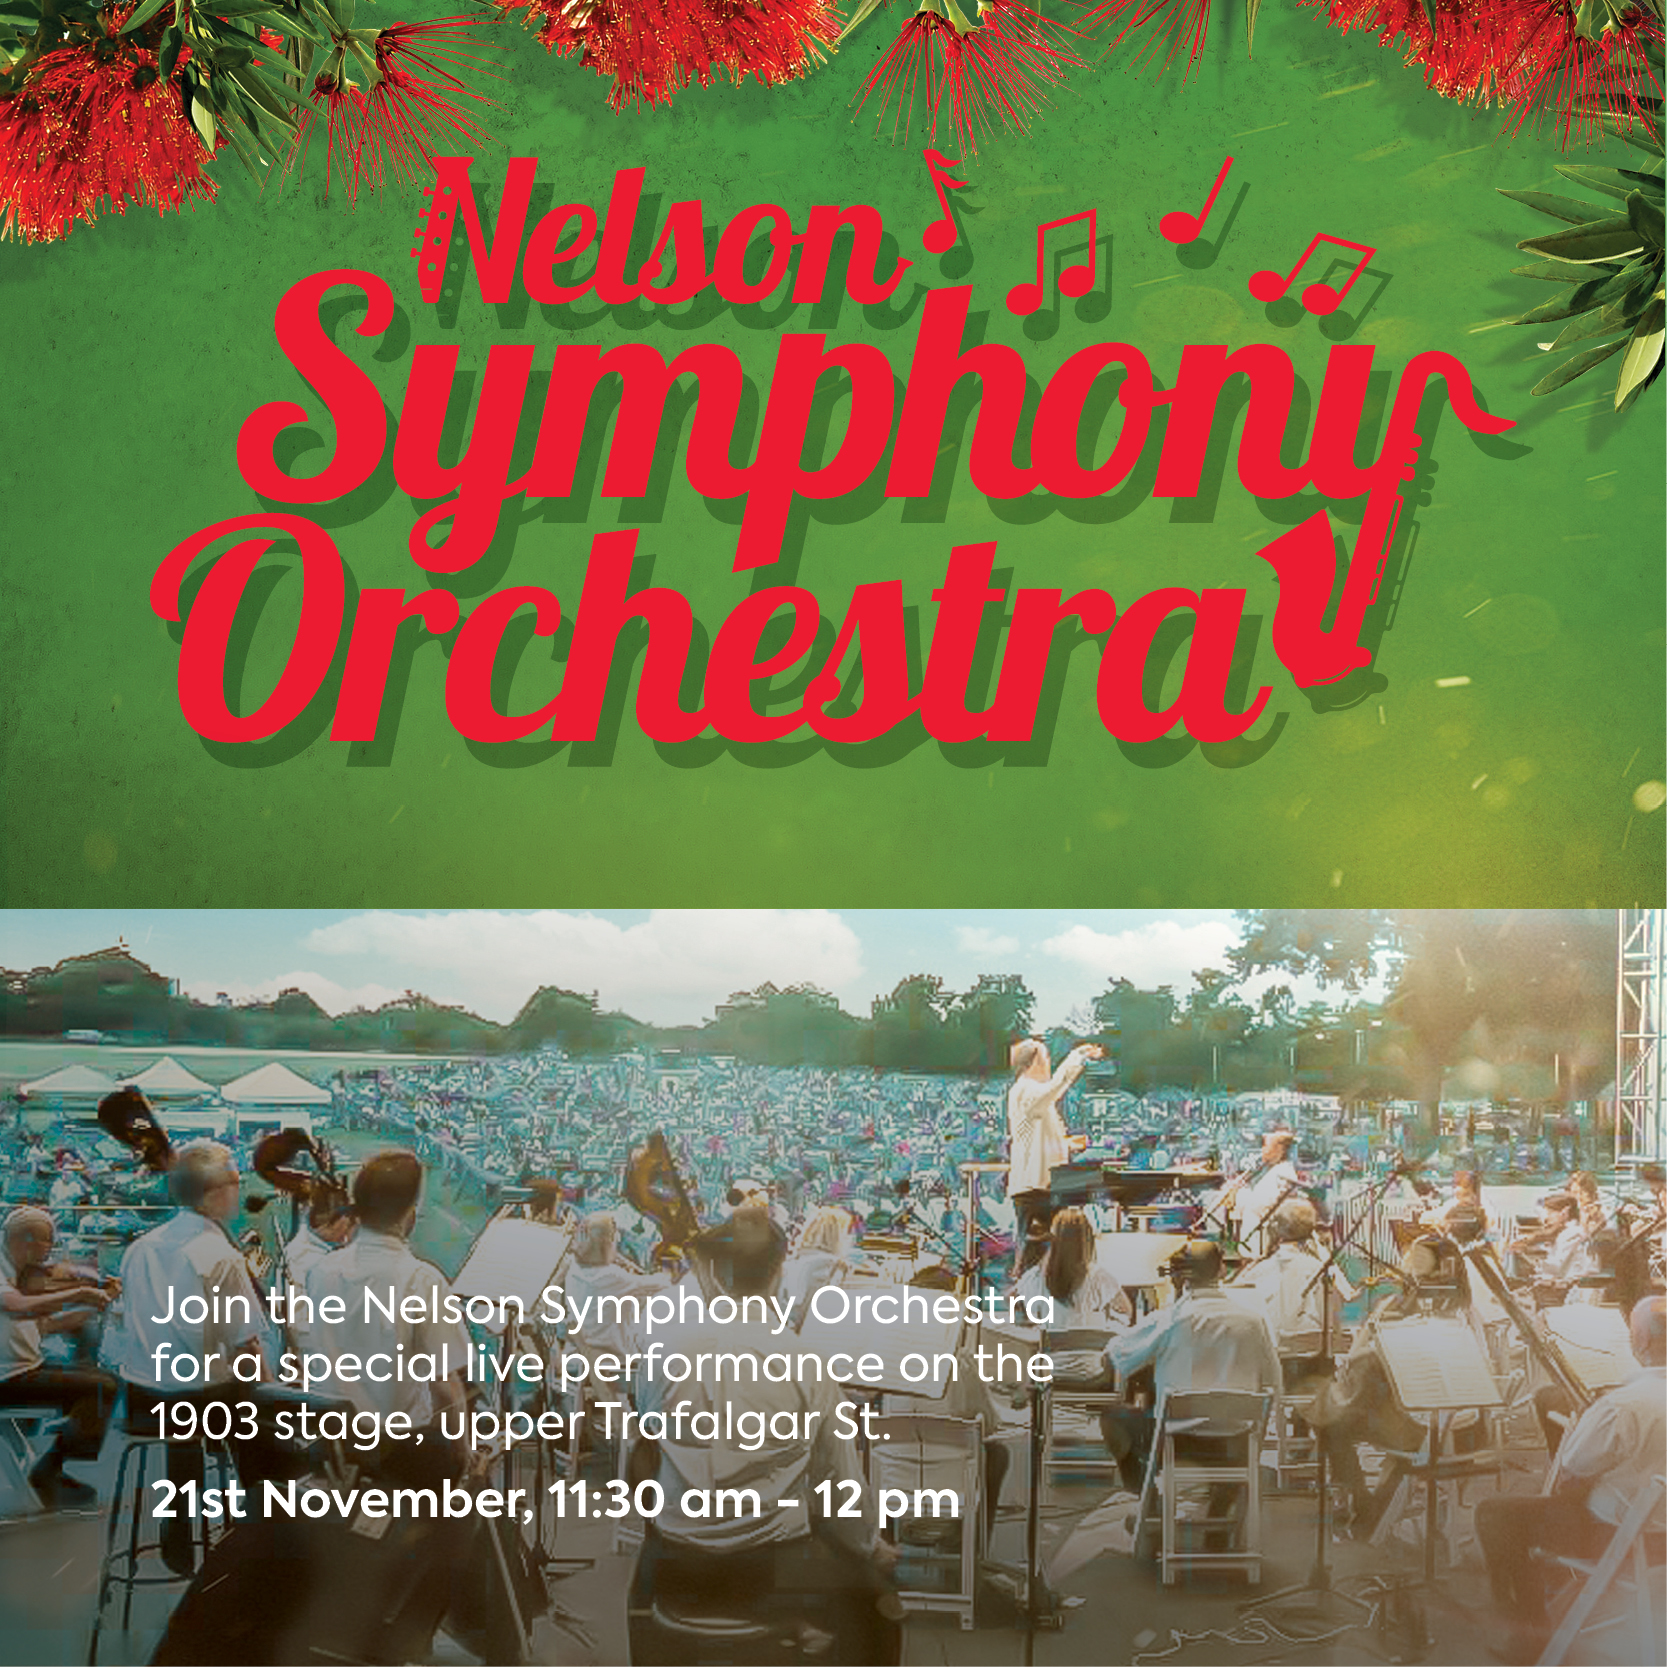 Nelson Symphony Orchestra | Nelson City Christmas Celebration | Christmas in Nelson